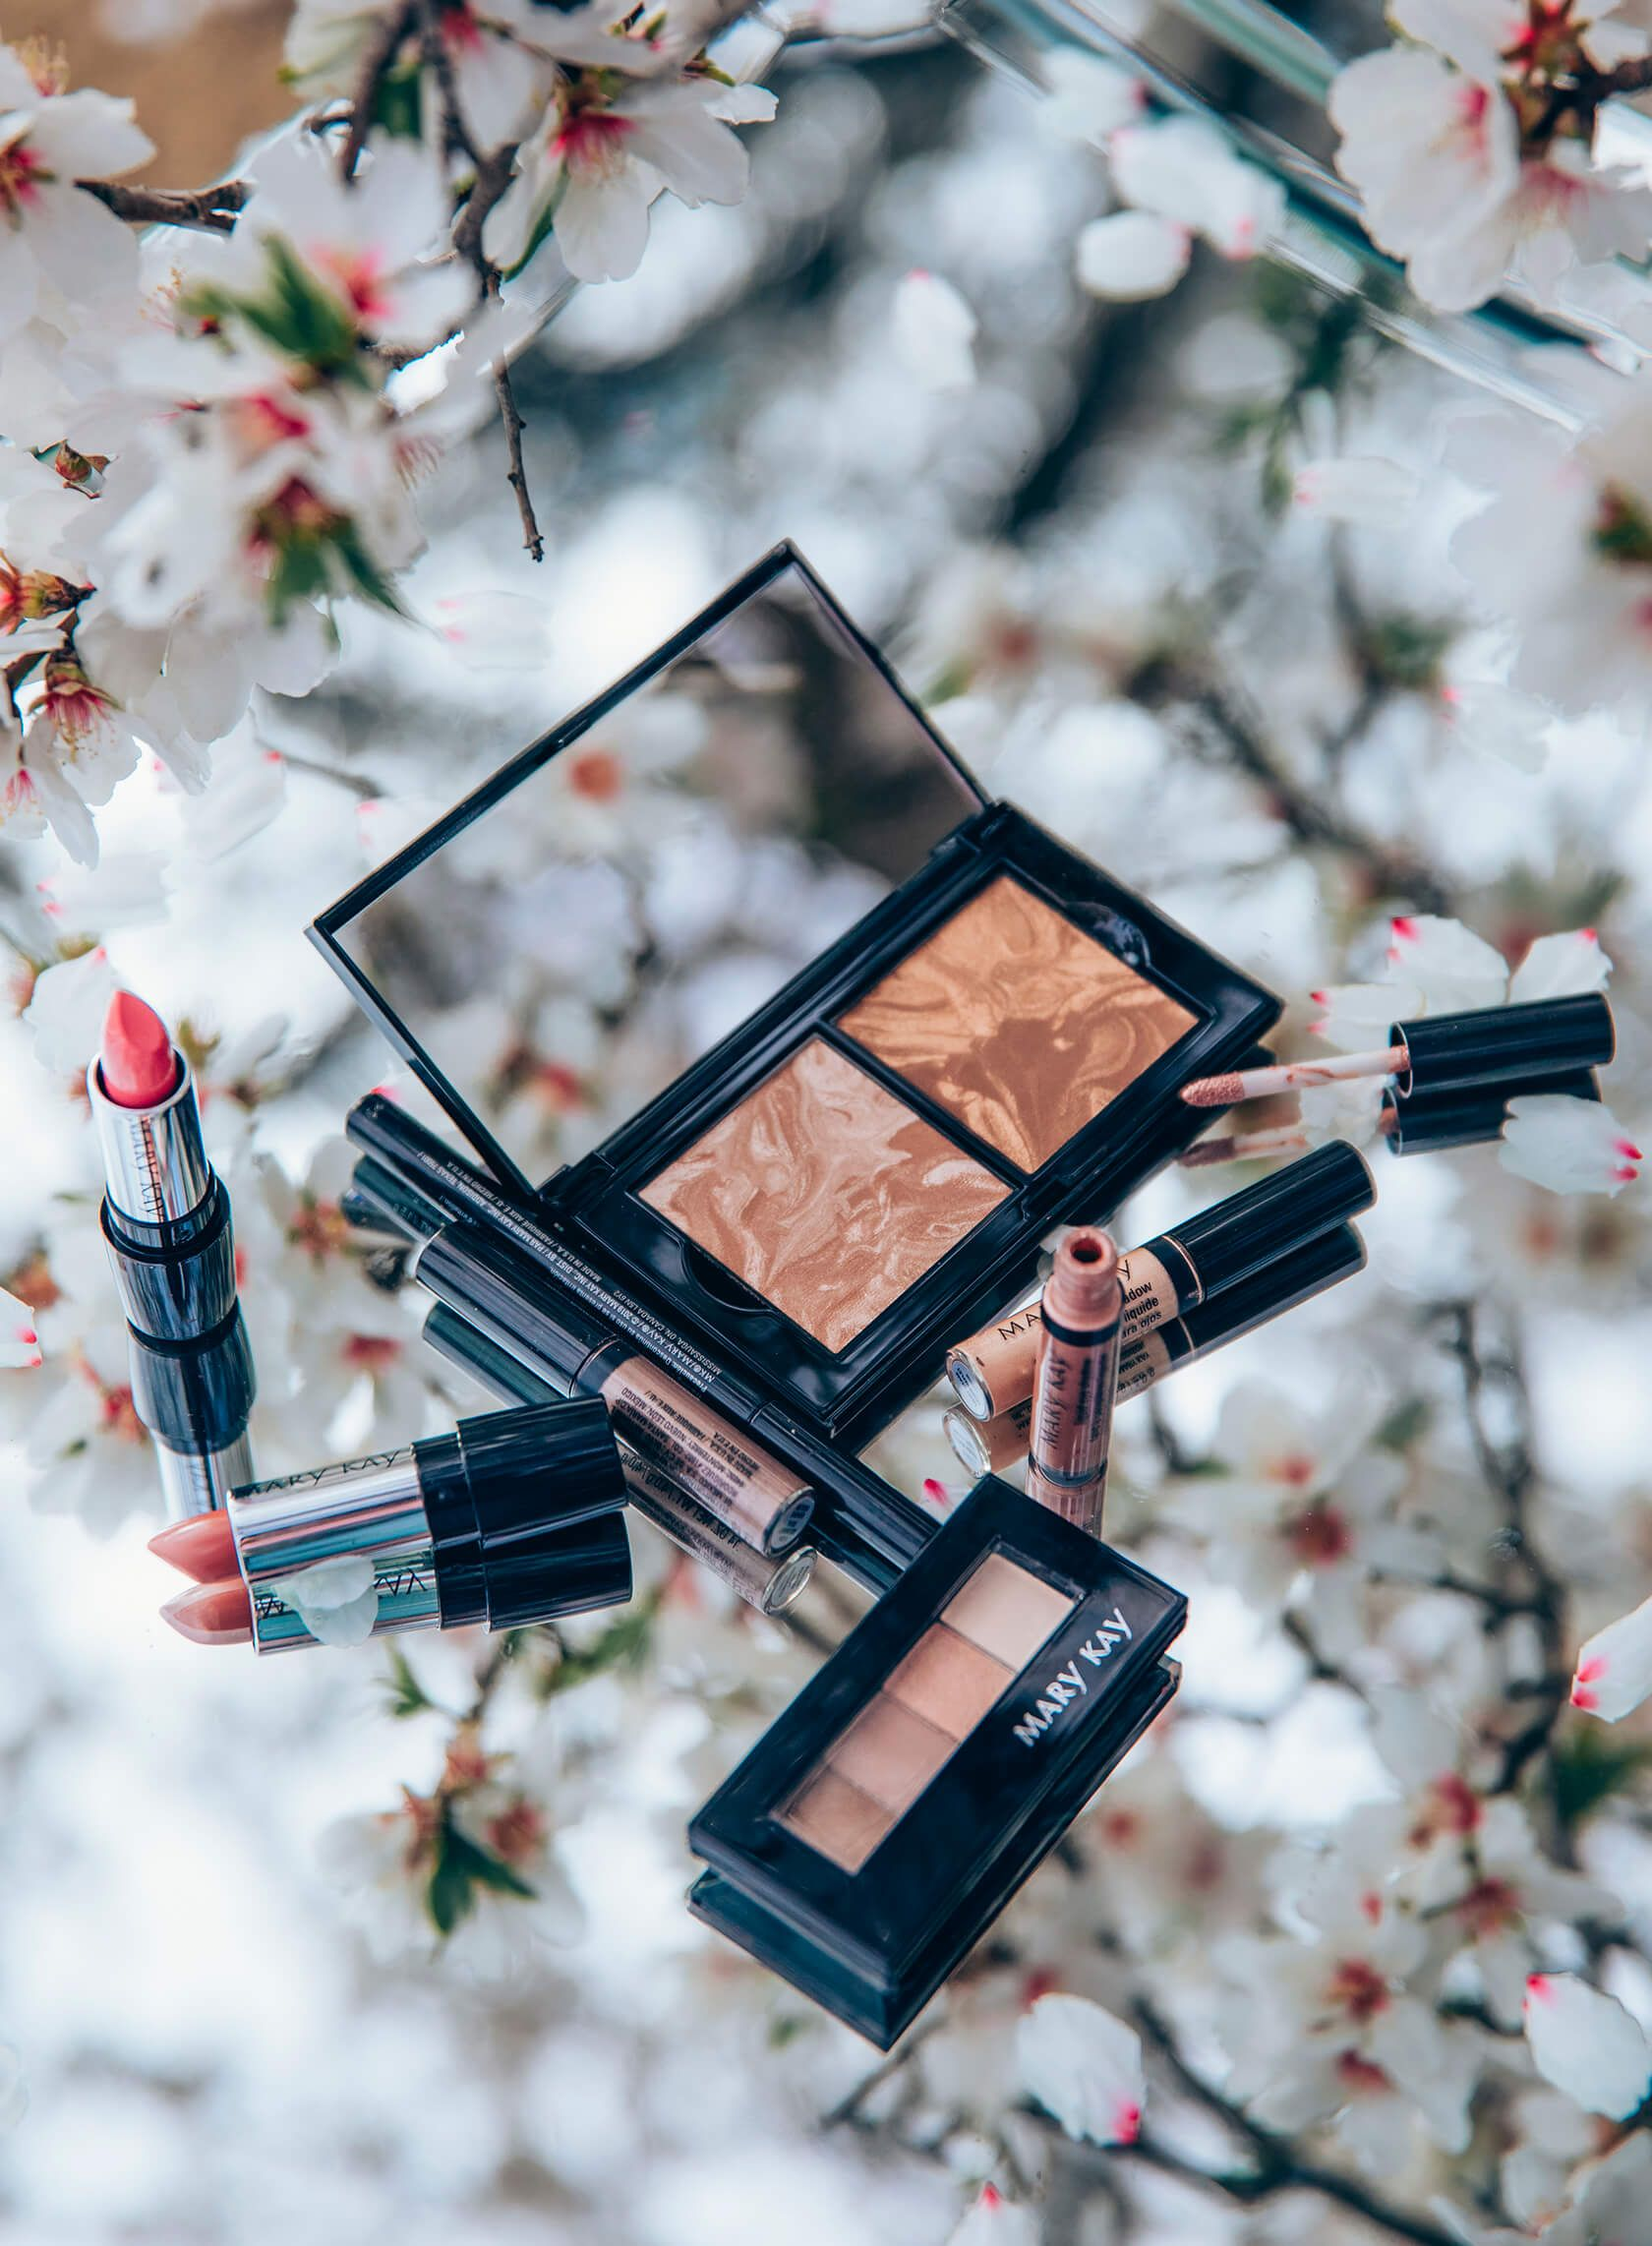 Mary Kay Spring Makeup My Shimmering Look in 2020